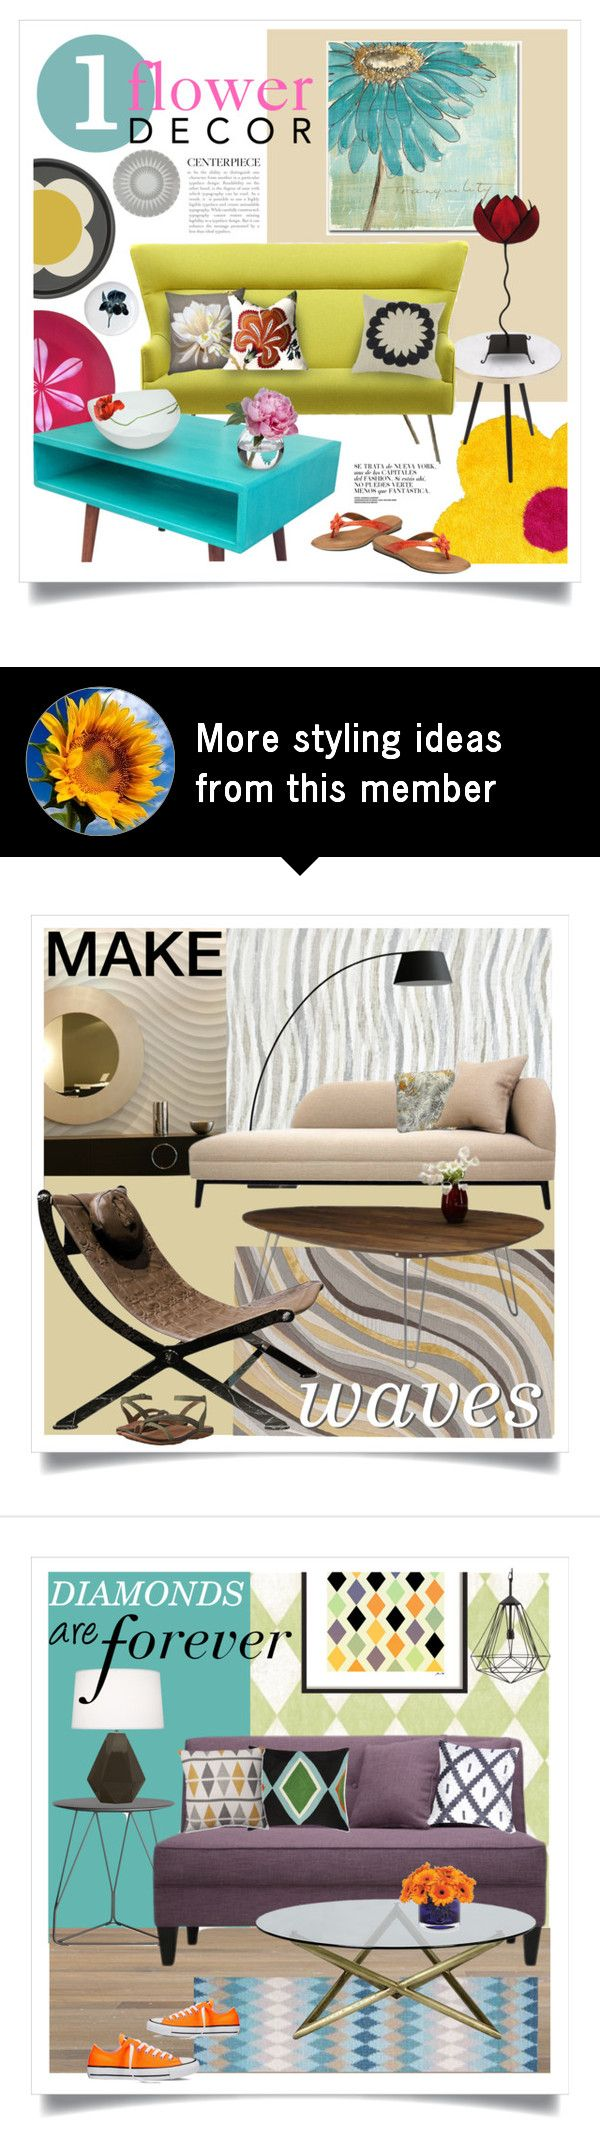 14476 best images about Top Interior Design Looks on Pinterest